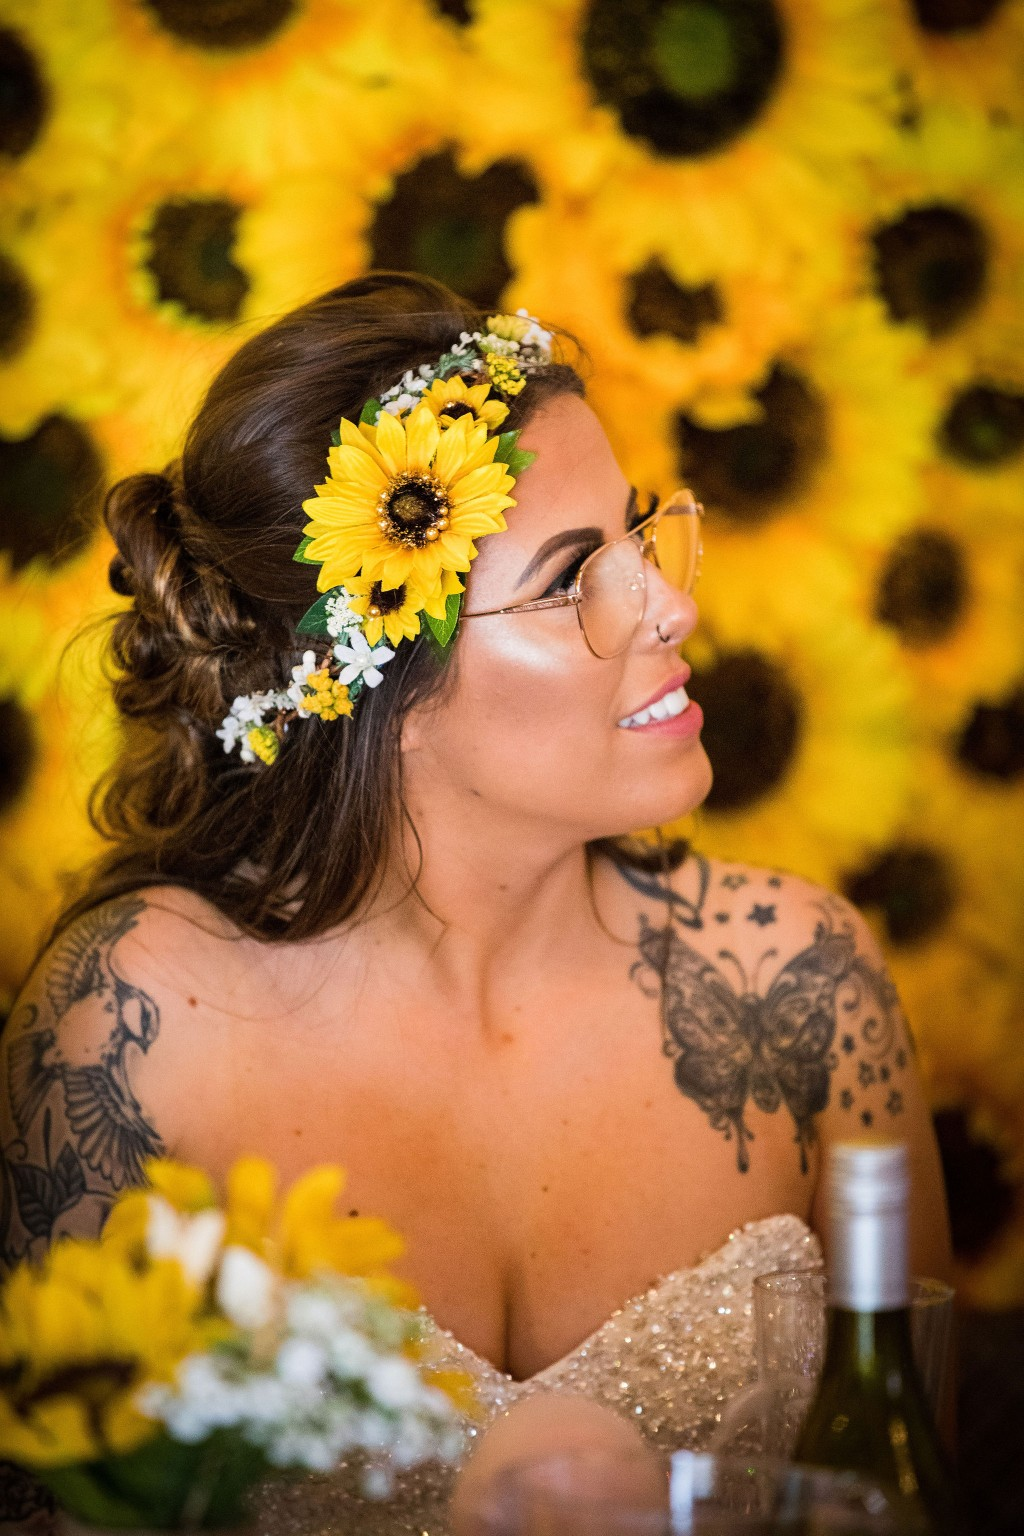 Harriet&Rhys Wedding - Magical sunflower wedding - sunflower bride